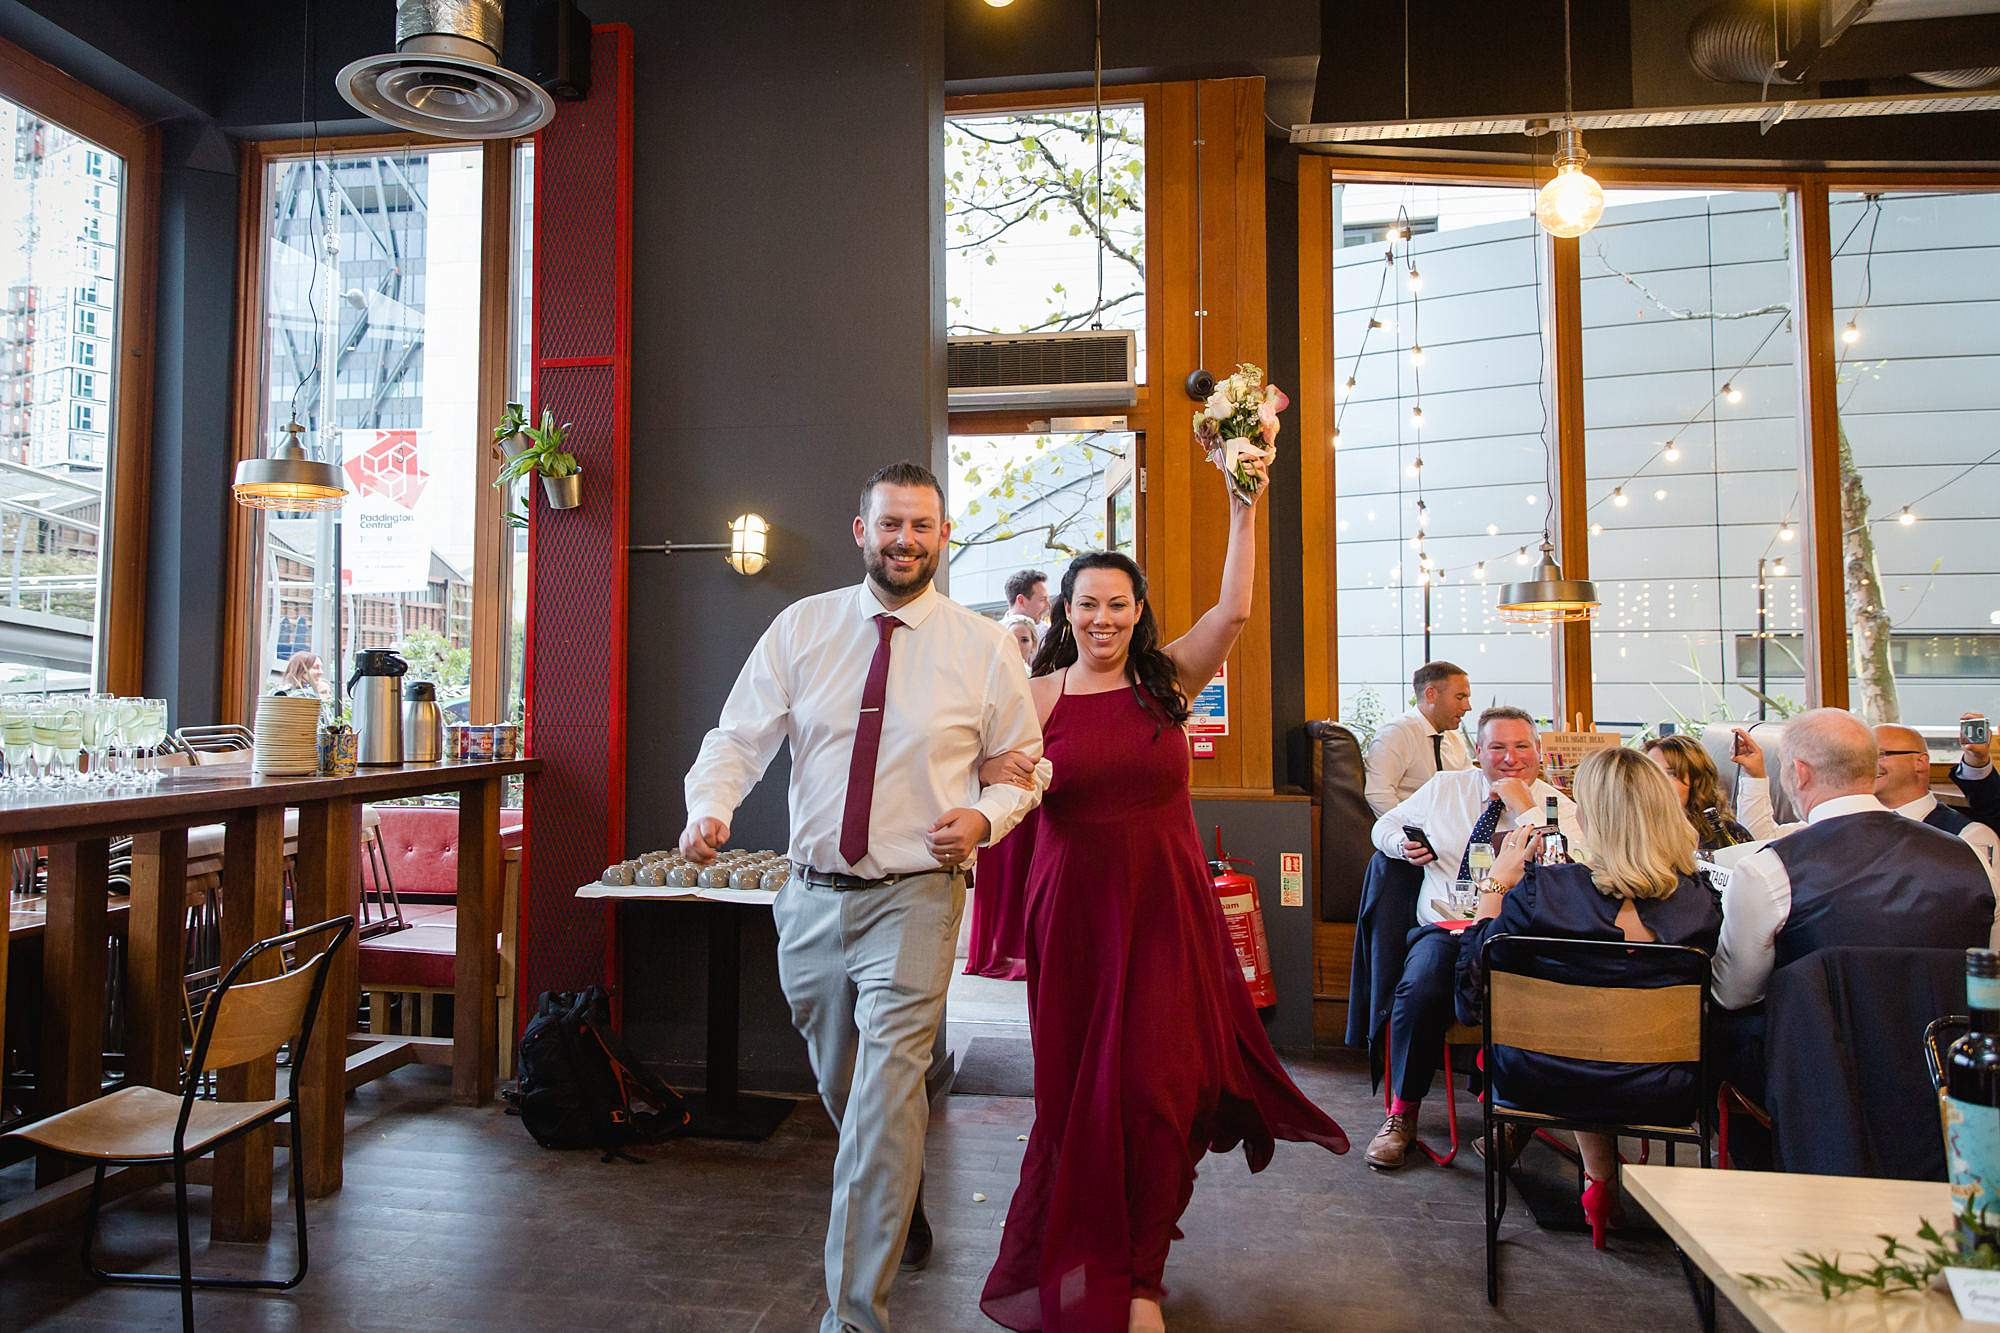 bridesmaid and groomsman cheer as they enter The Union Paddington wedding reception